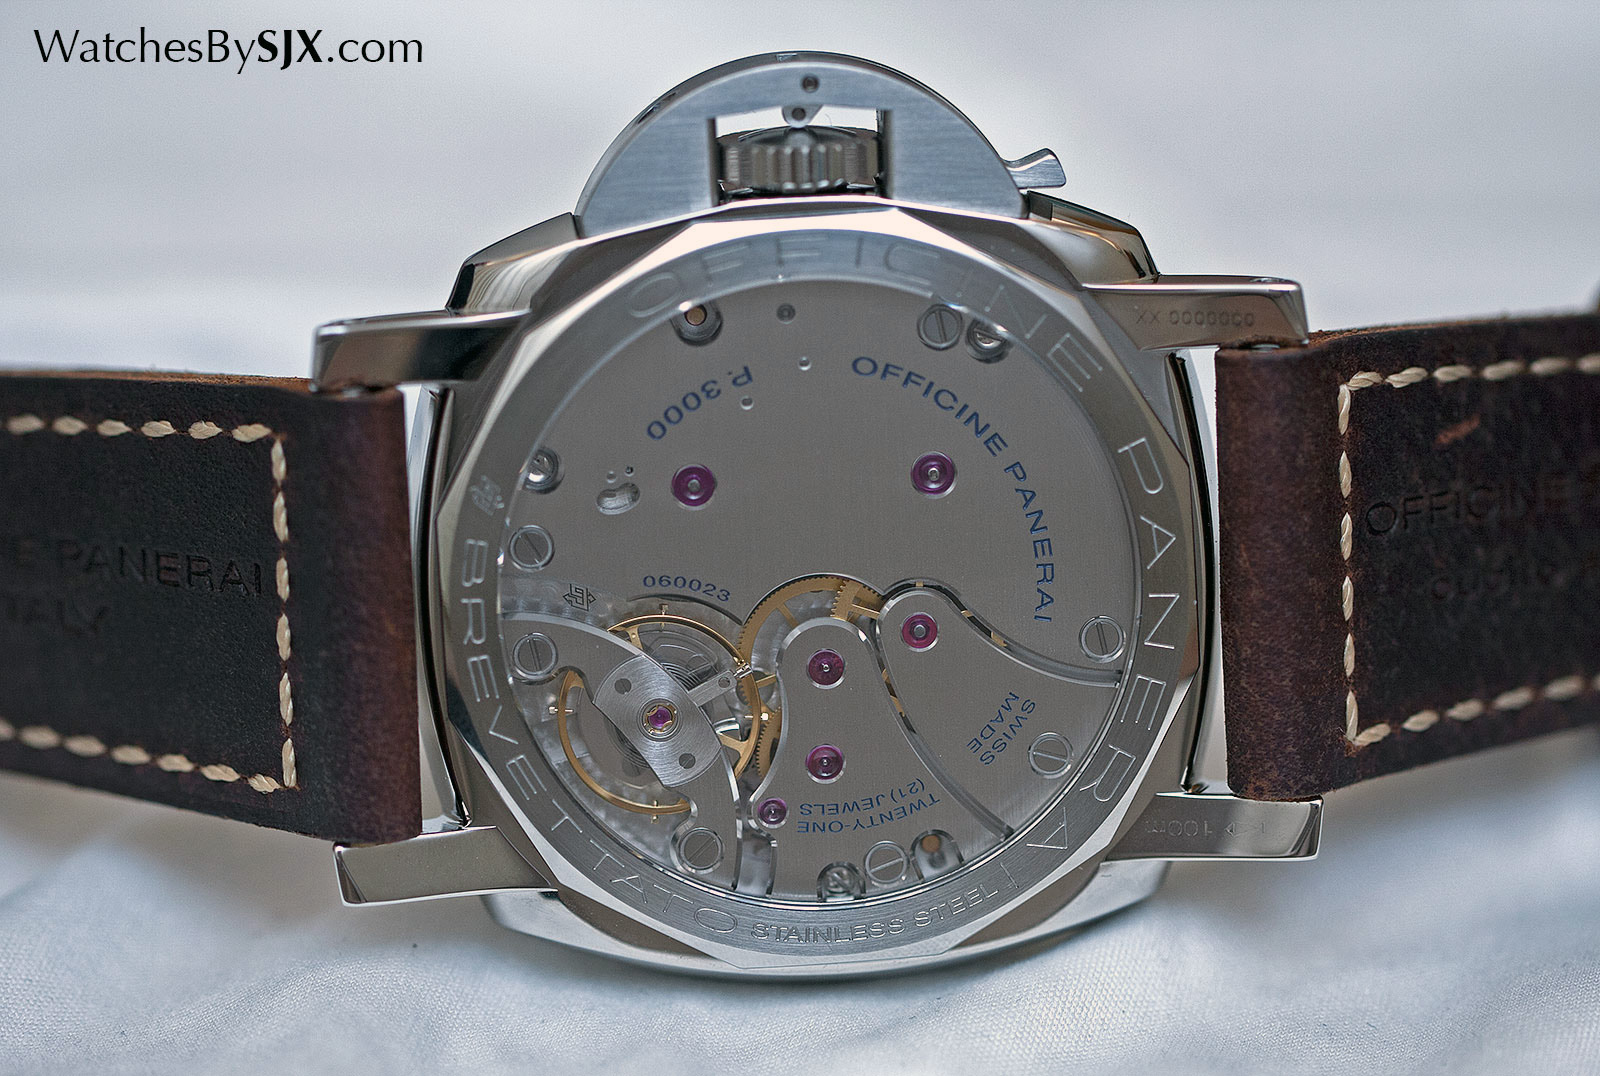 Panerai Luminor 1950 3 Days Acciaio PAM663 movement